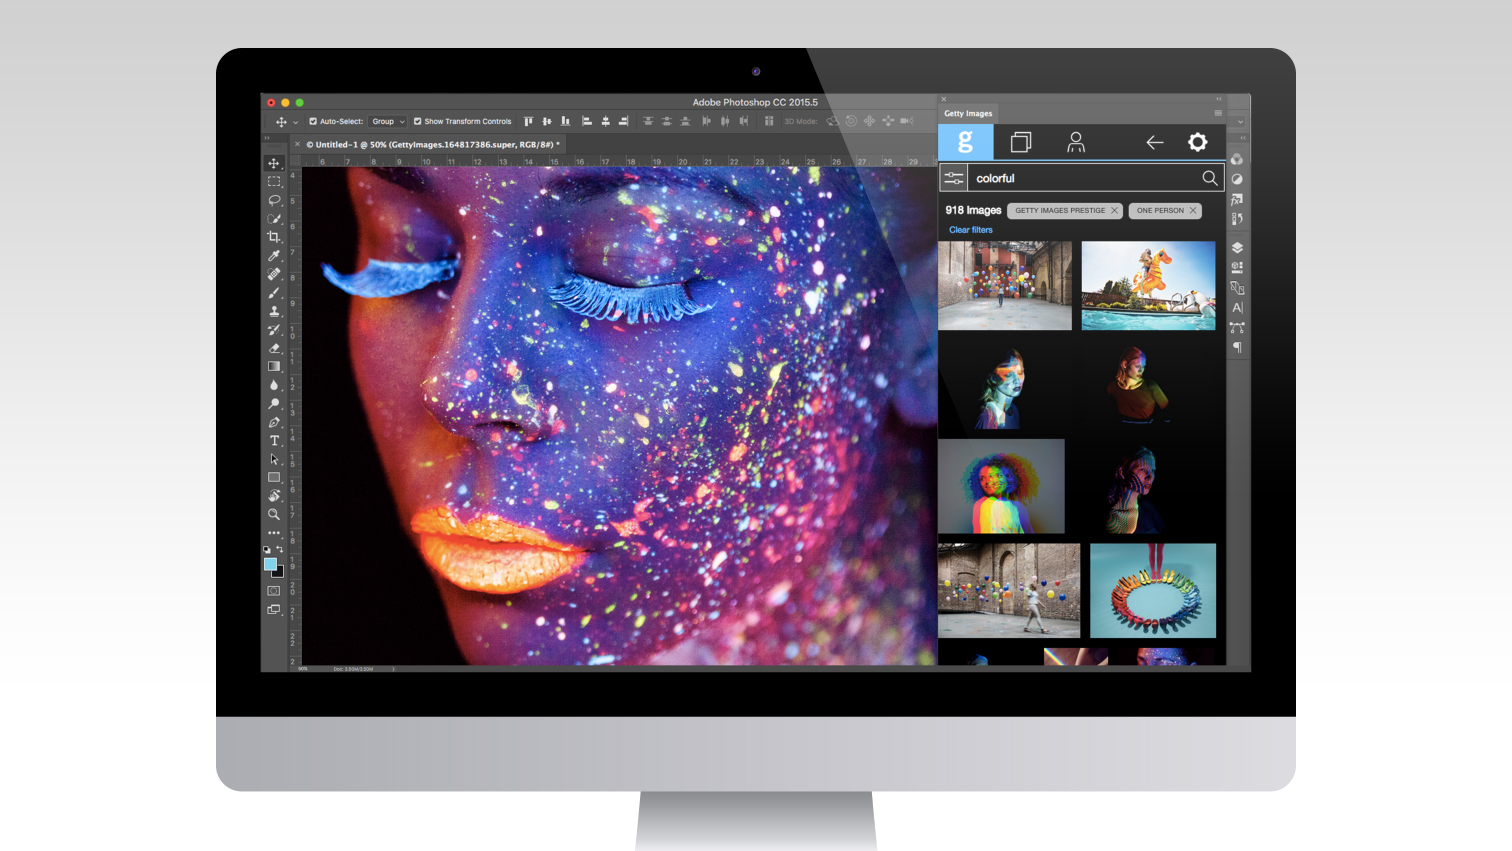 Save 40% on Adobe Creative Cloud with this epic deal